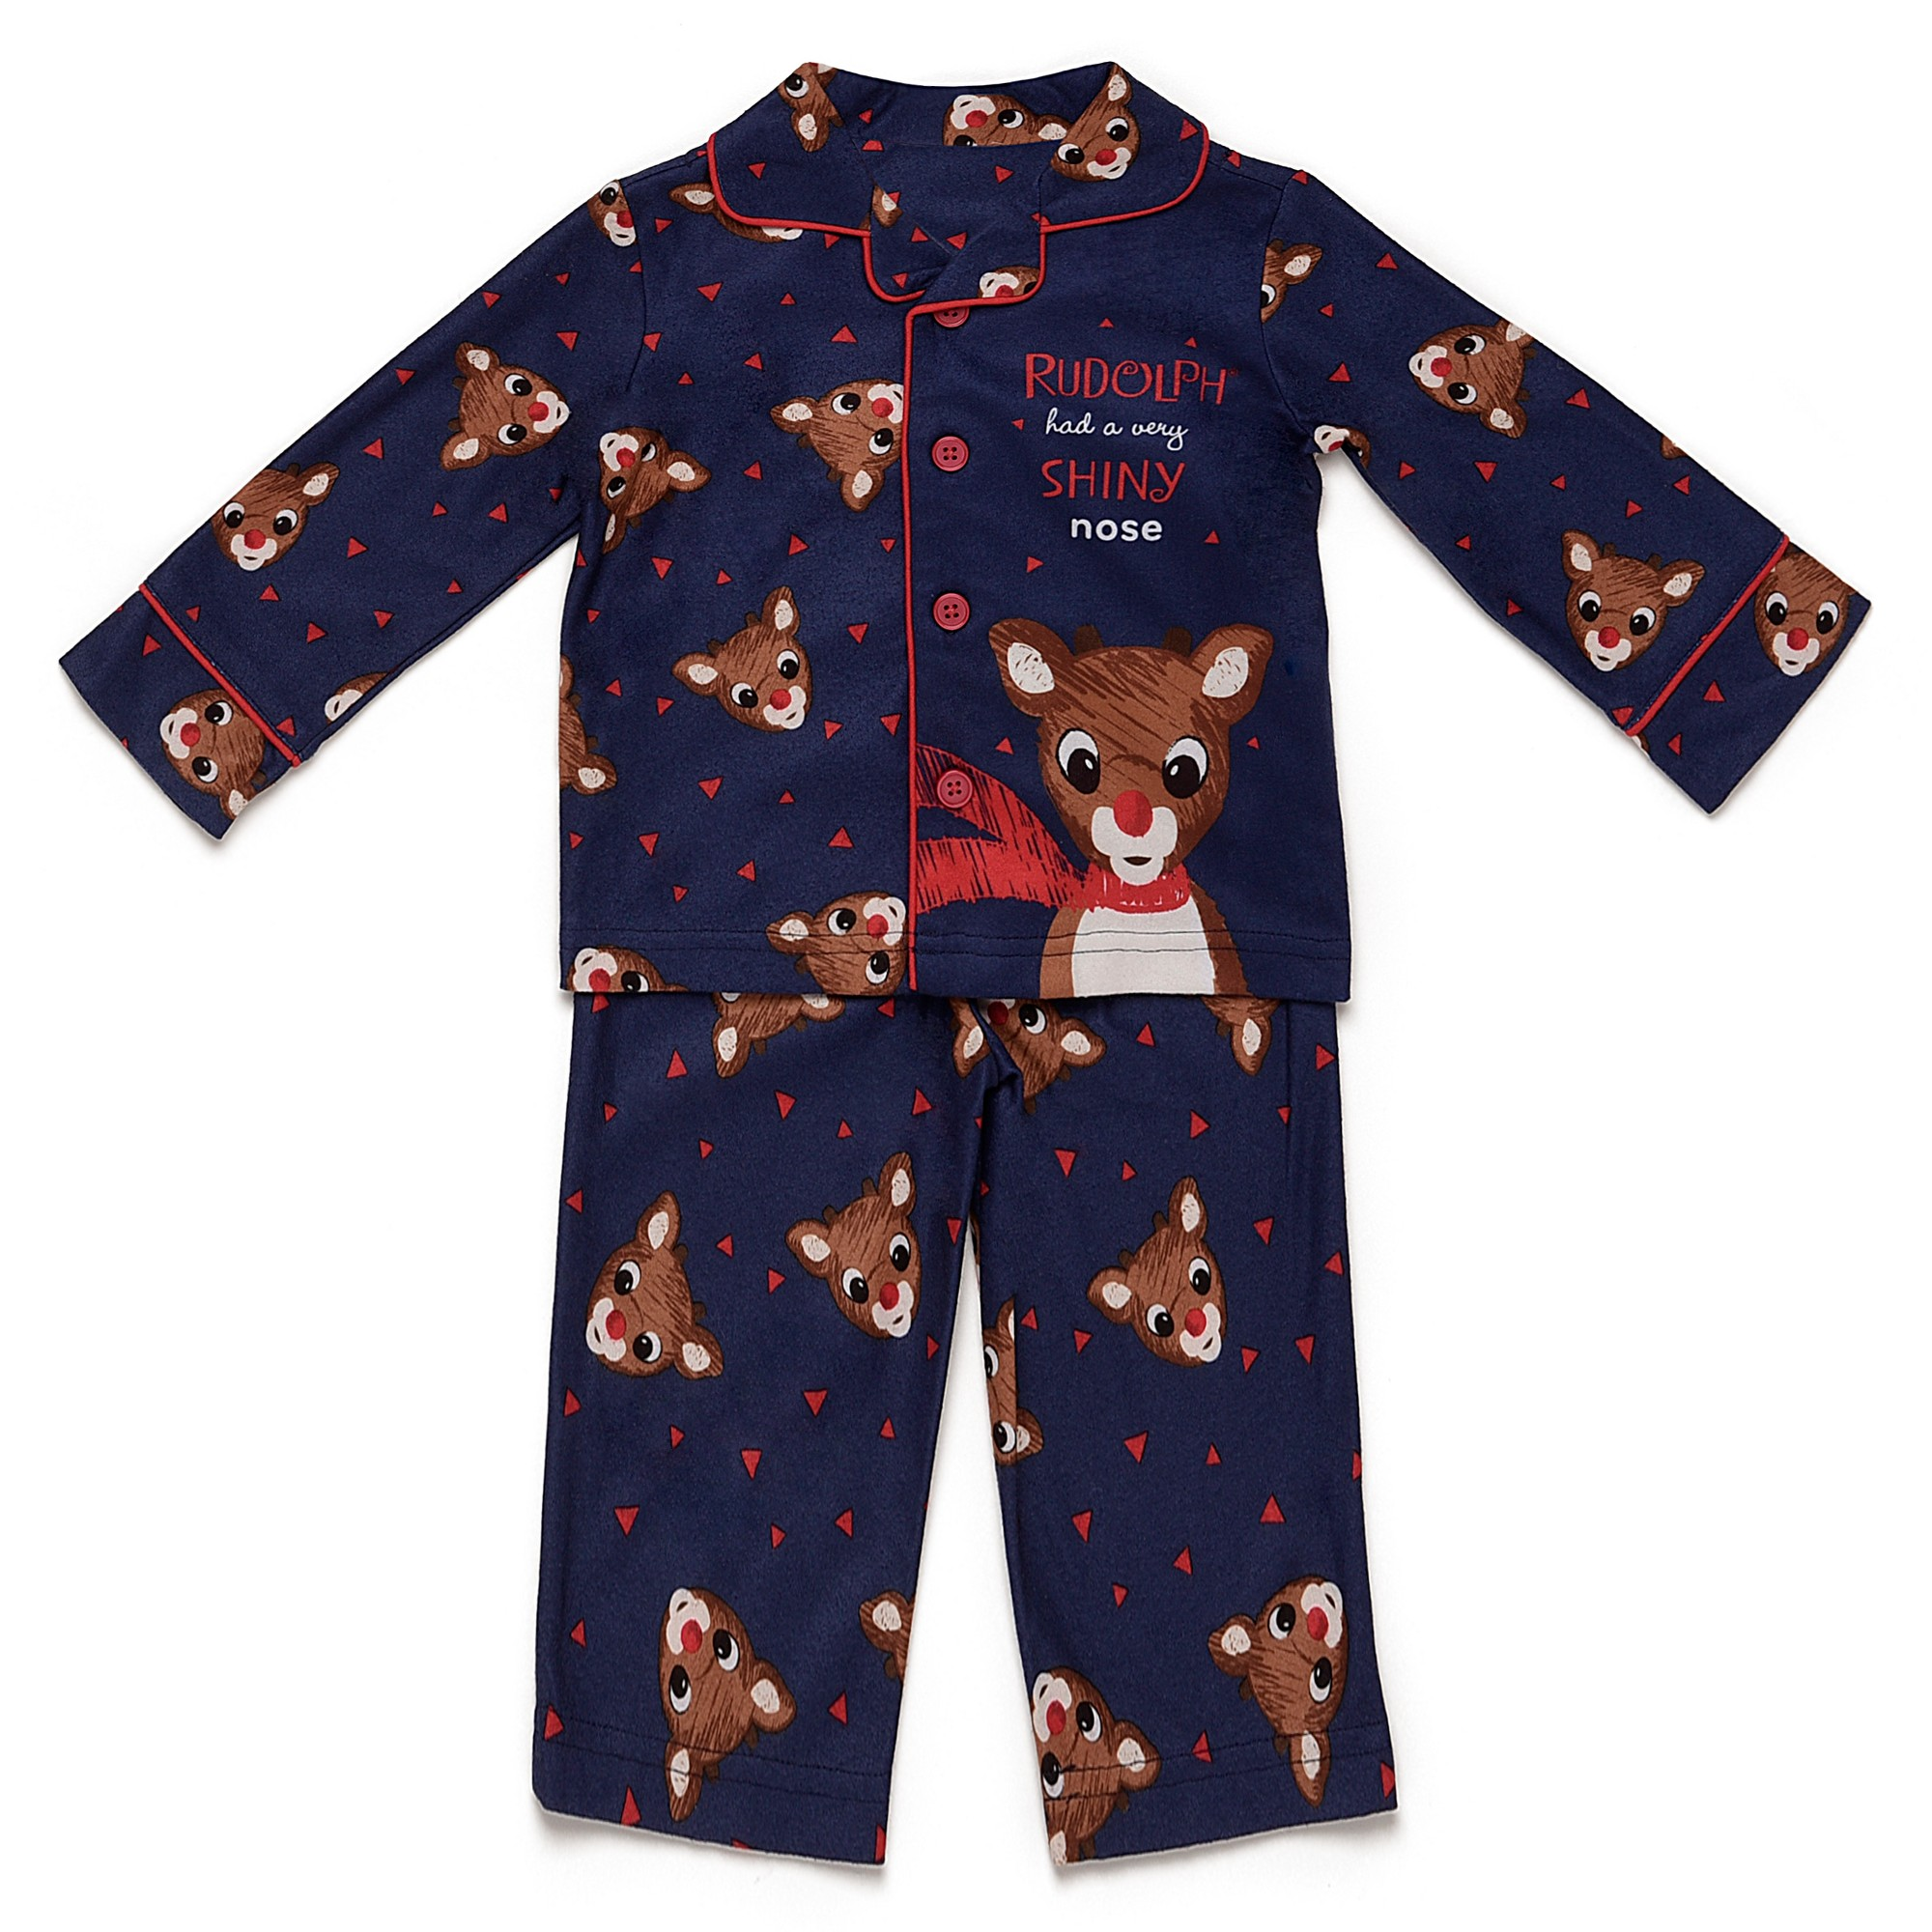 57e39beccee0 Toddler Boys  Rudolph the Red-Nosed Raindeer Pajama Set - Blue 4T ...